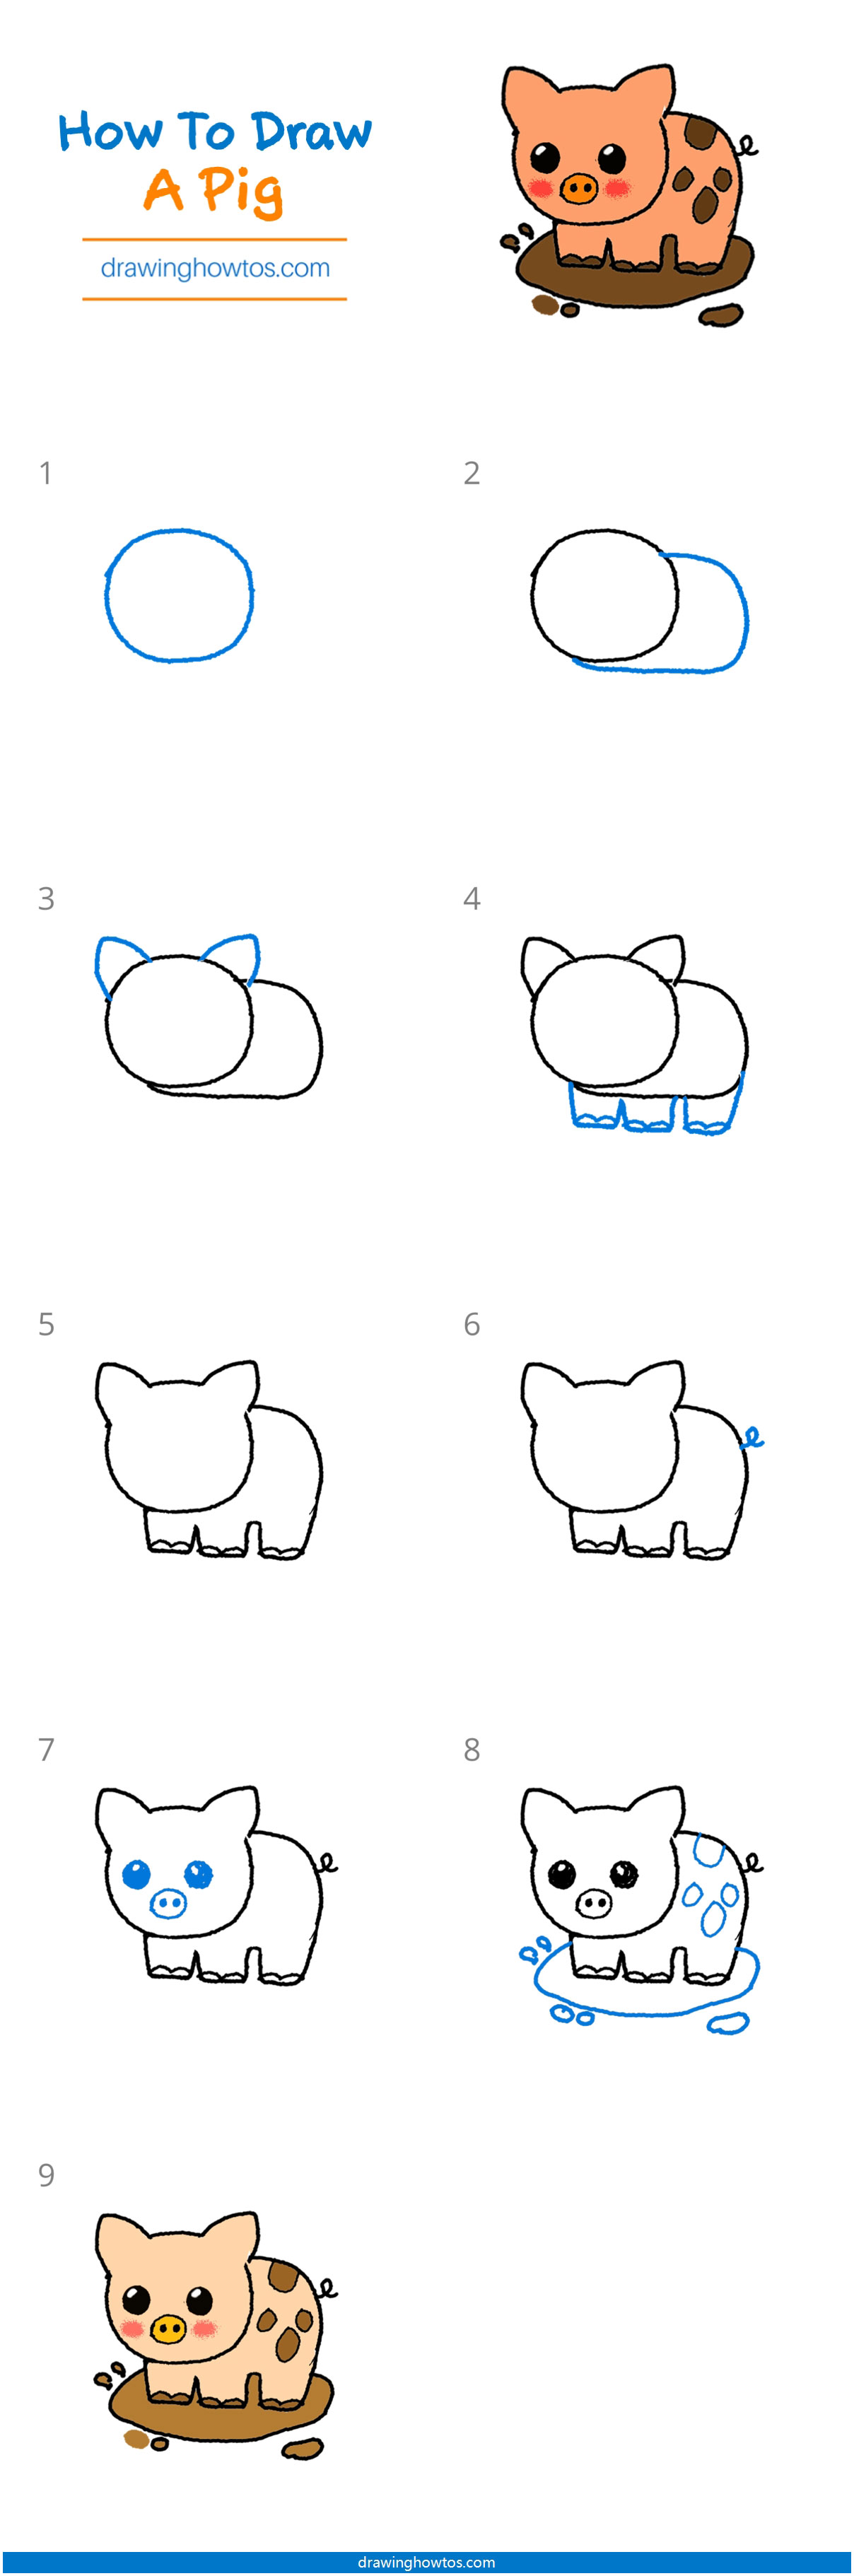 How To Draw A Pig Face : Drawing, Guides, Howtos